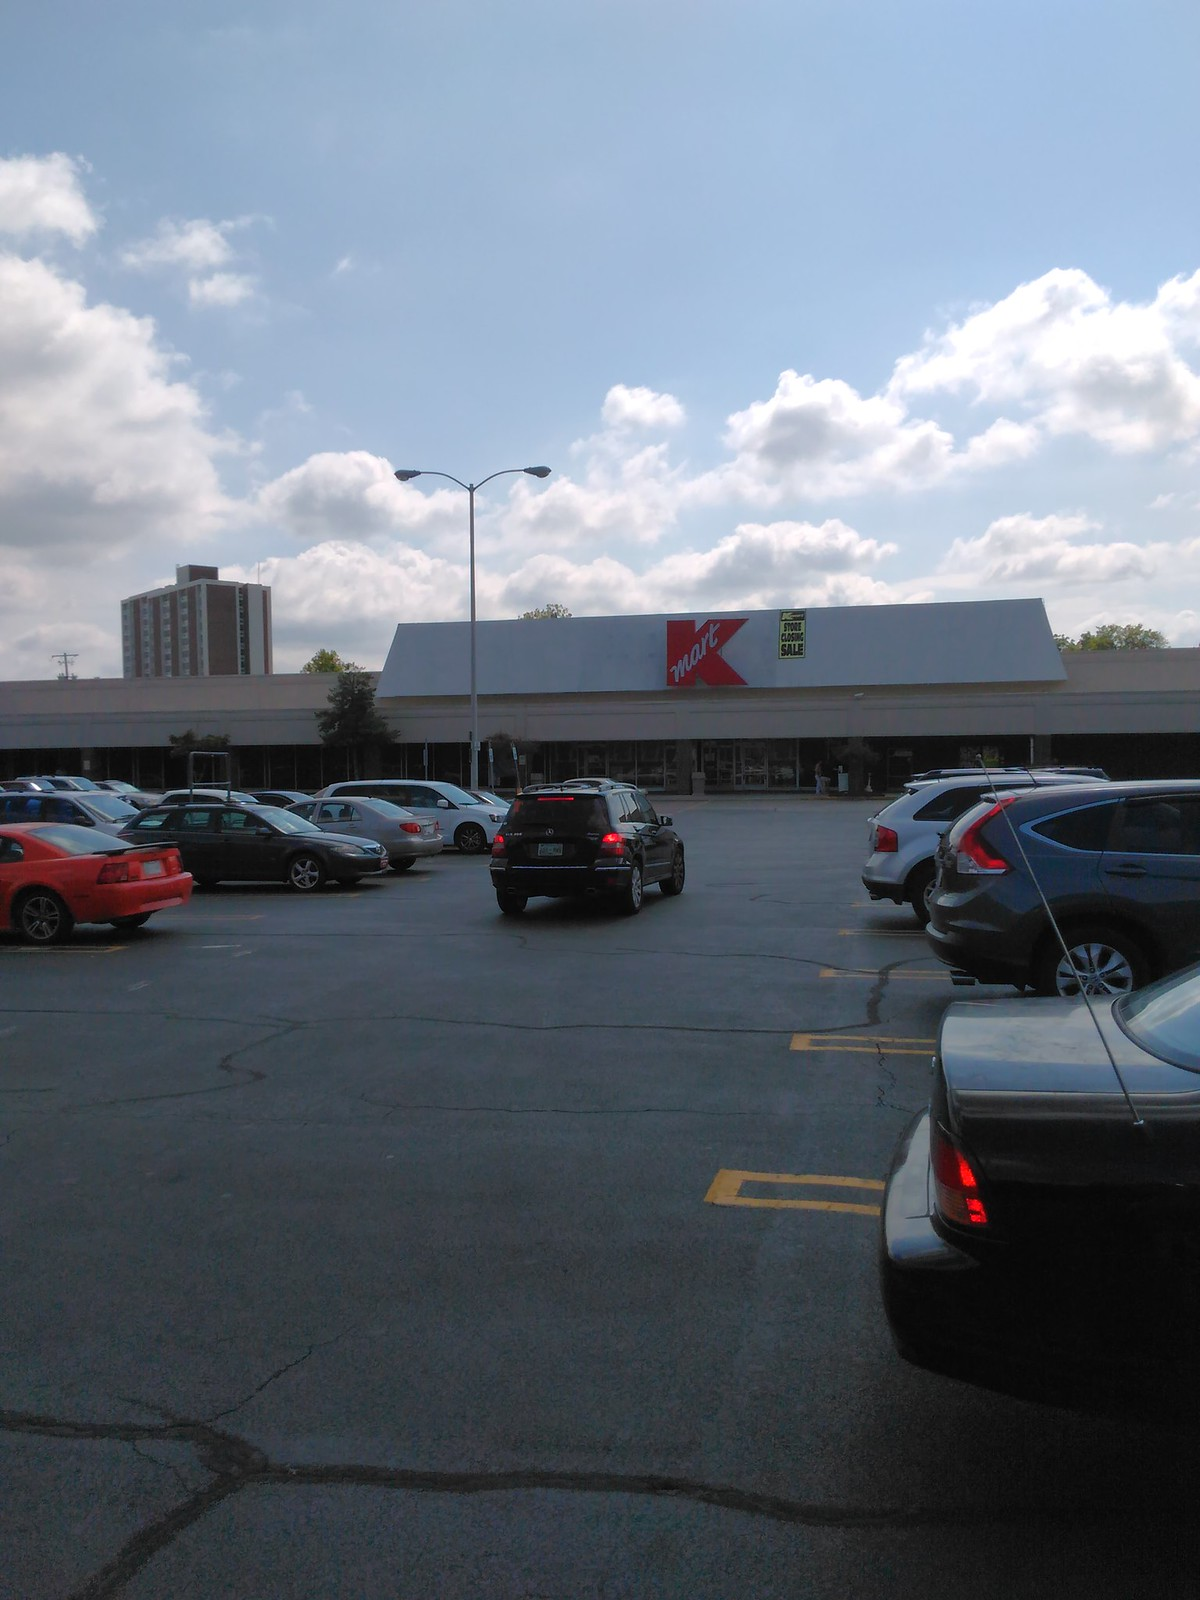 Kmart -- Broadway, Knoxville Tennessee